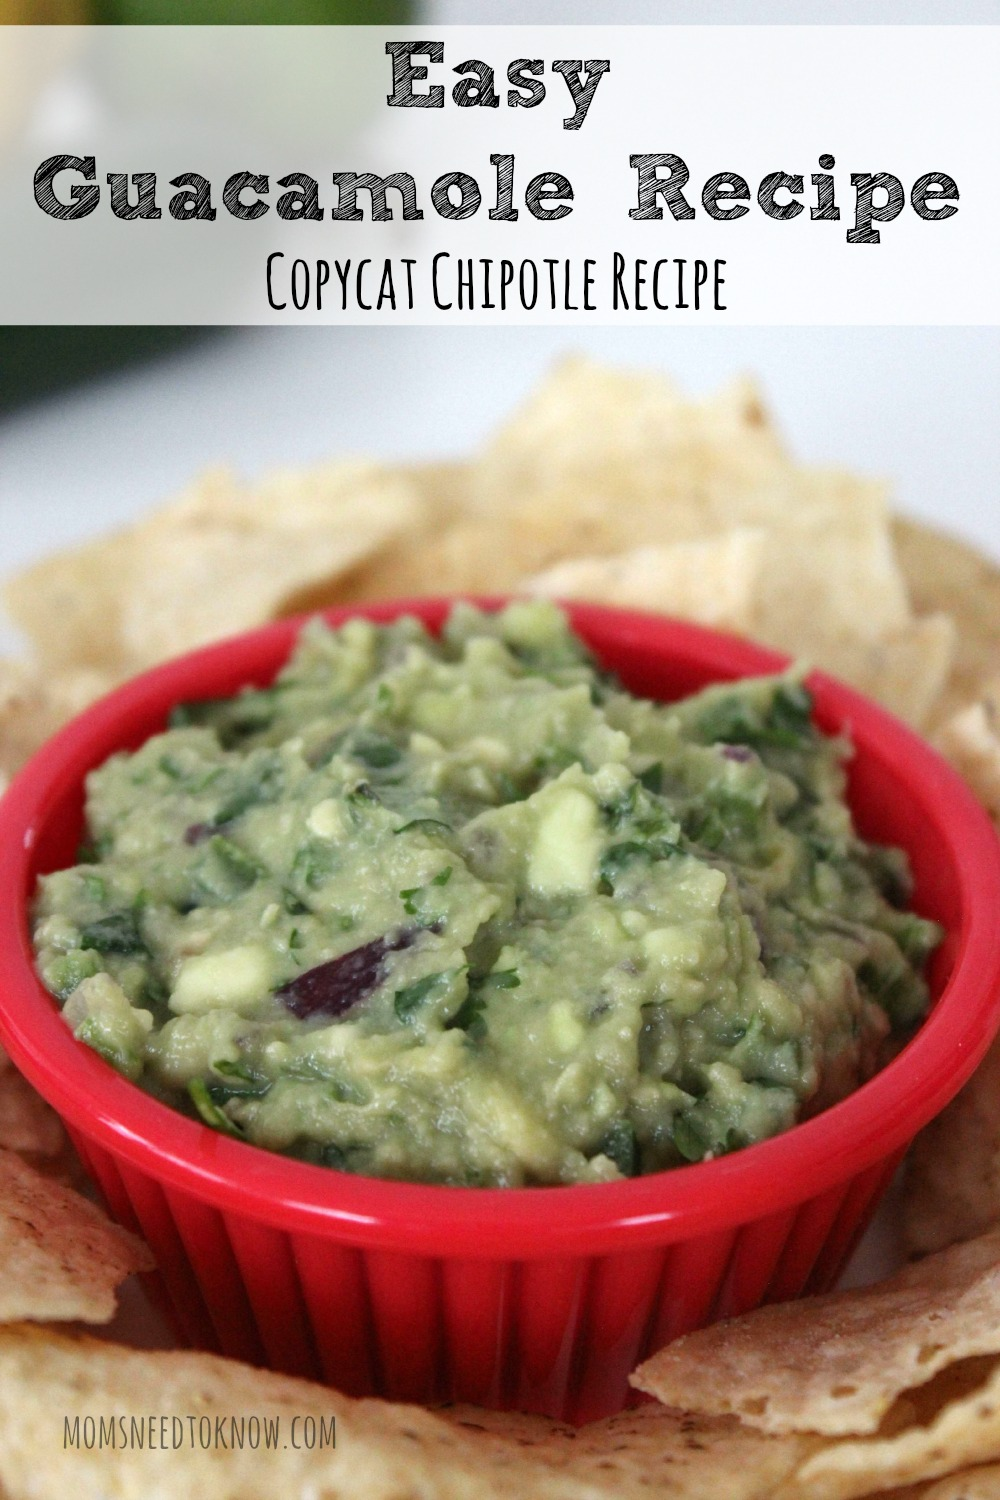 Guacamole is so cheap to make and tastes so much better when it is freshly made. With this easy guacamole recipe, you save money & enjoy more flavor!